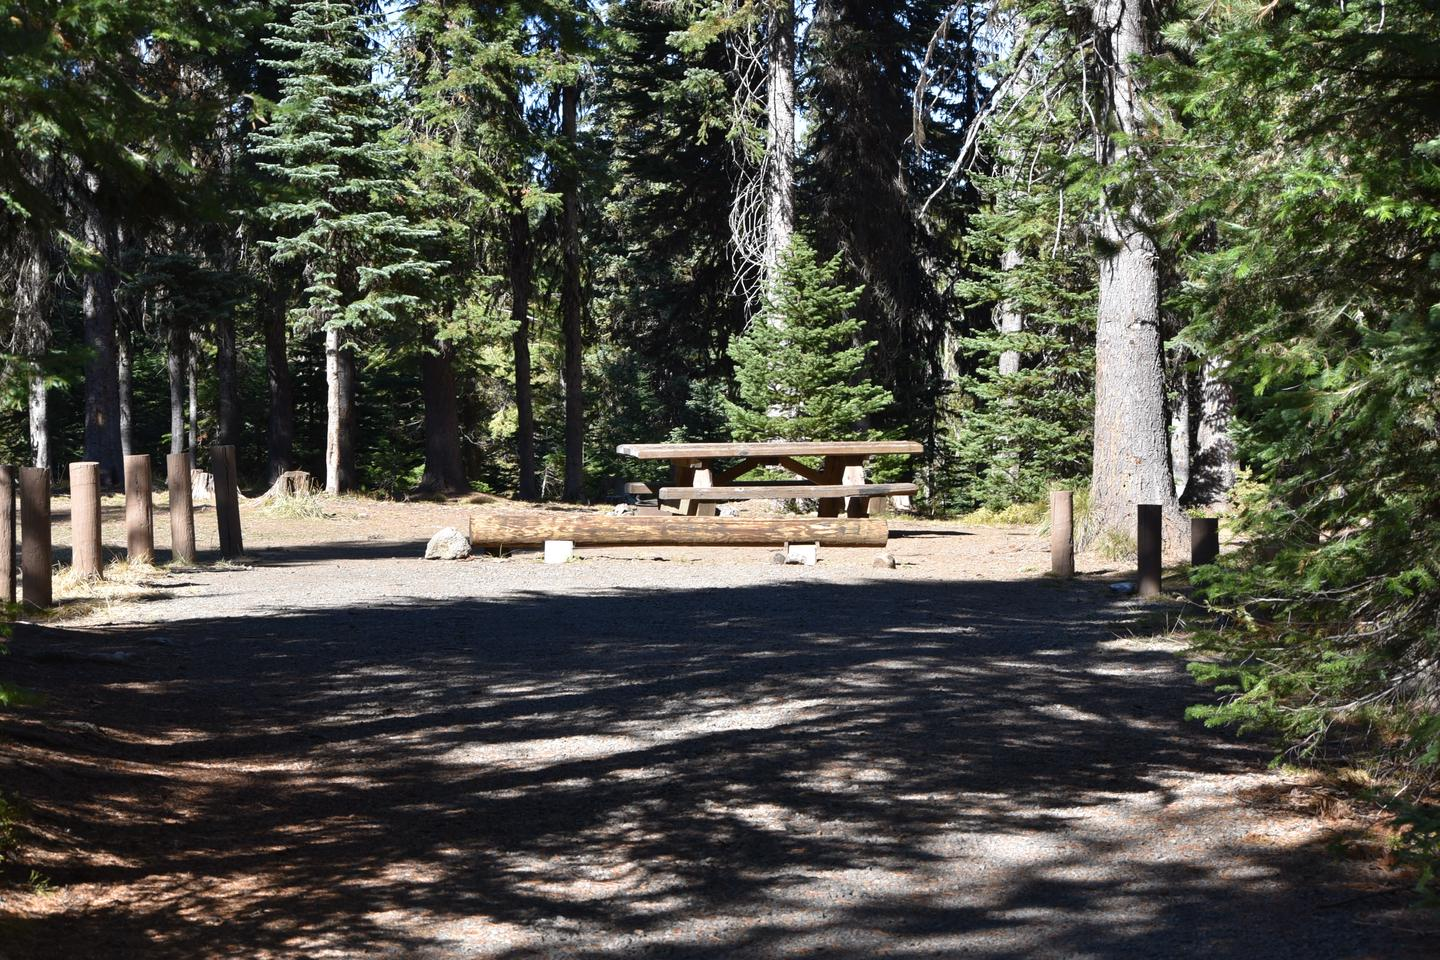 camp site parking area, gravel with treesJubilee Lake Campground site #20